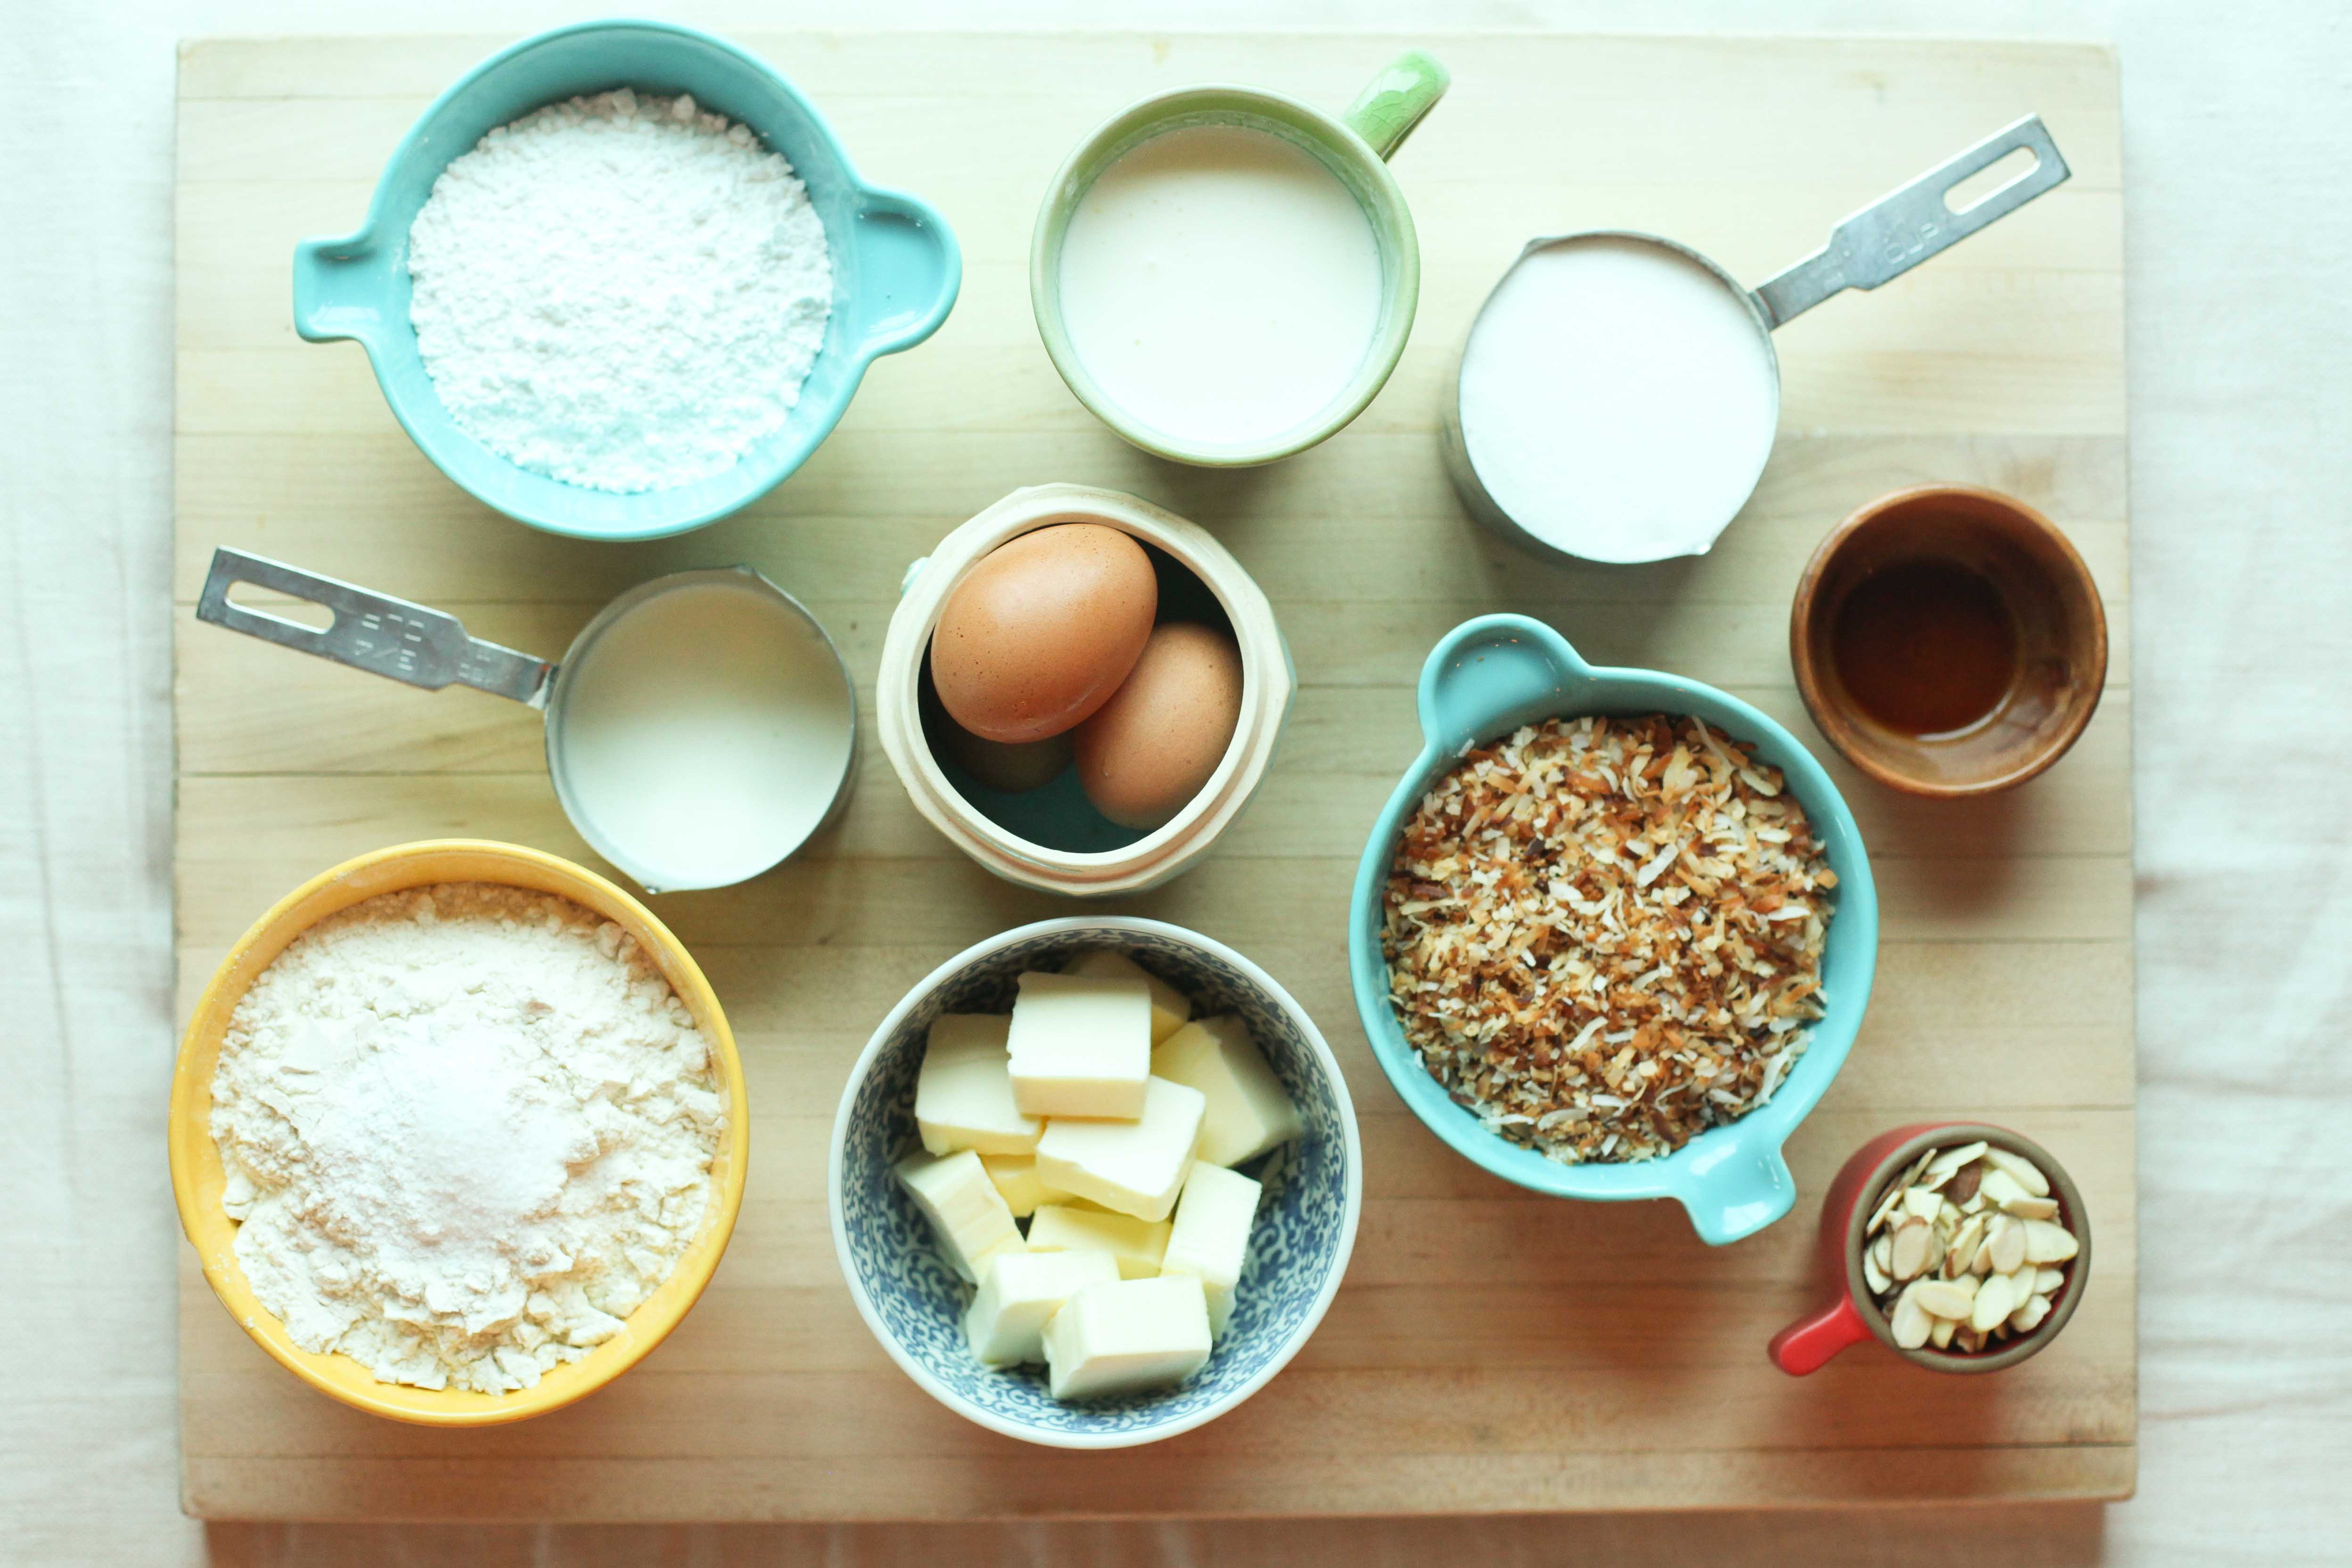 Baking for What are the ingredients for making cake